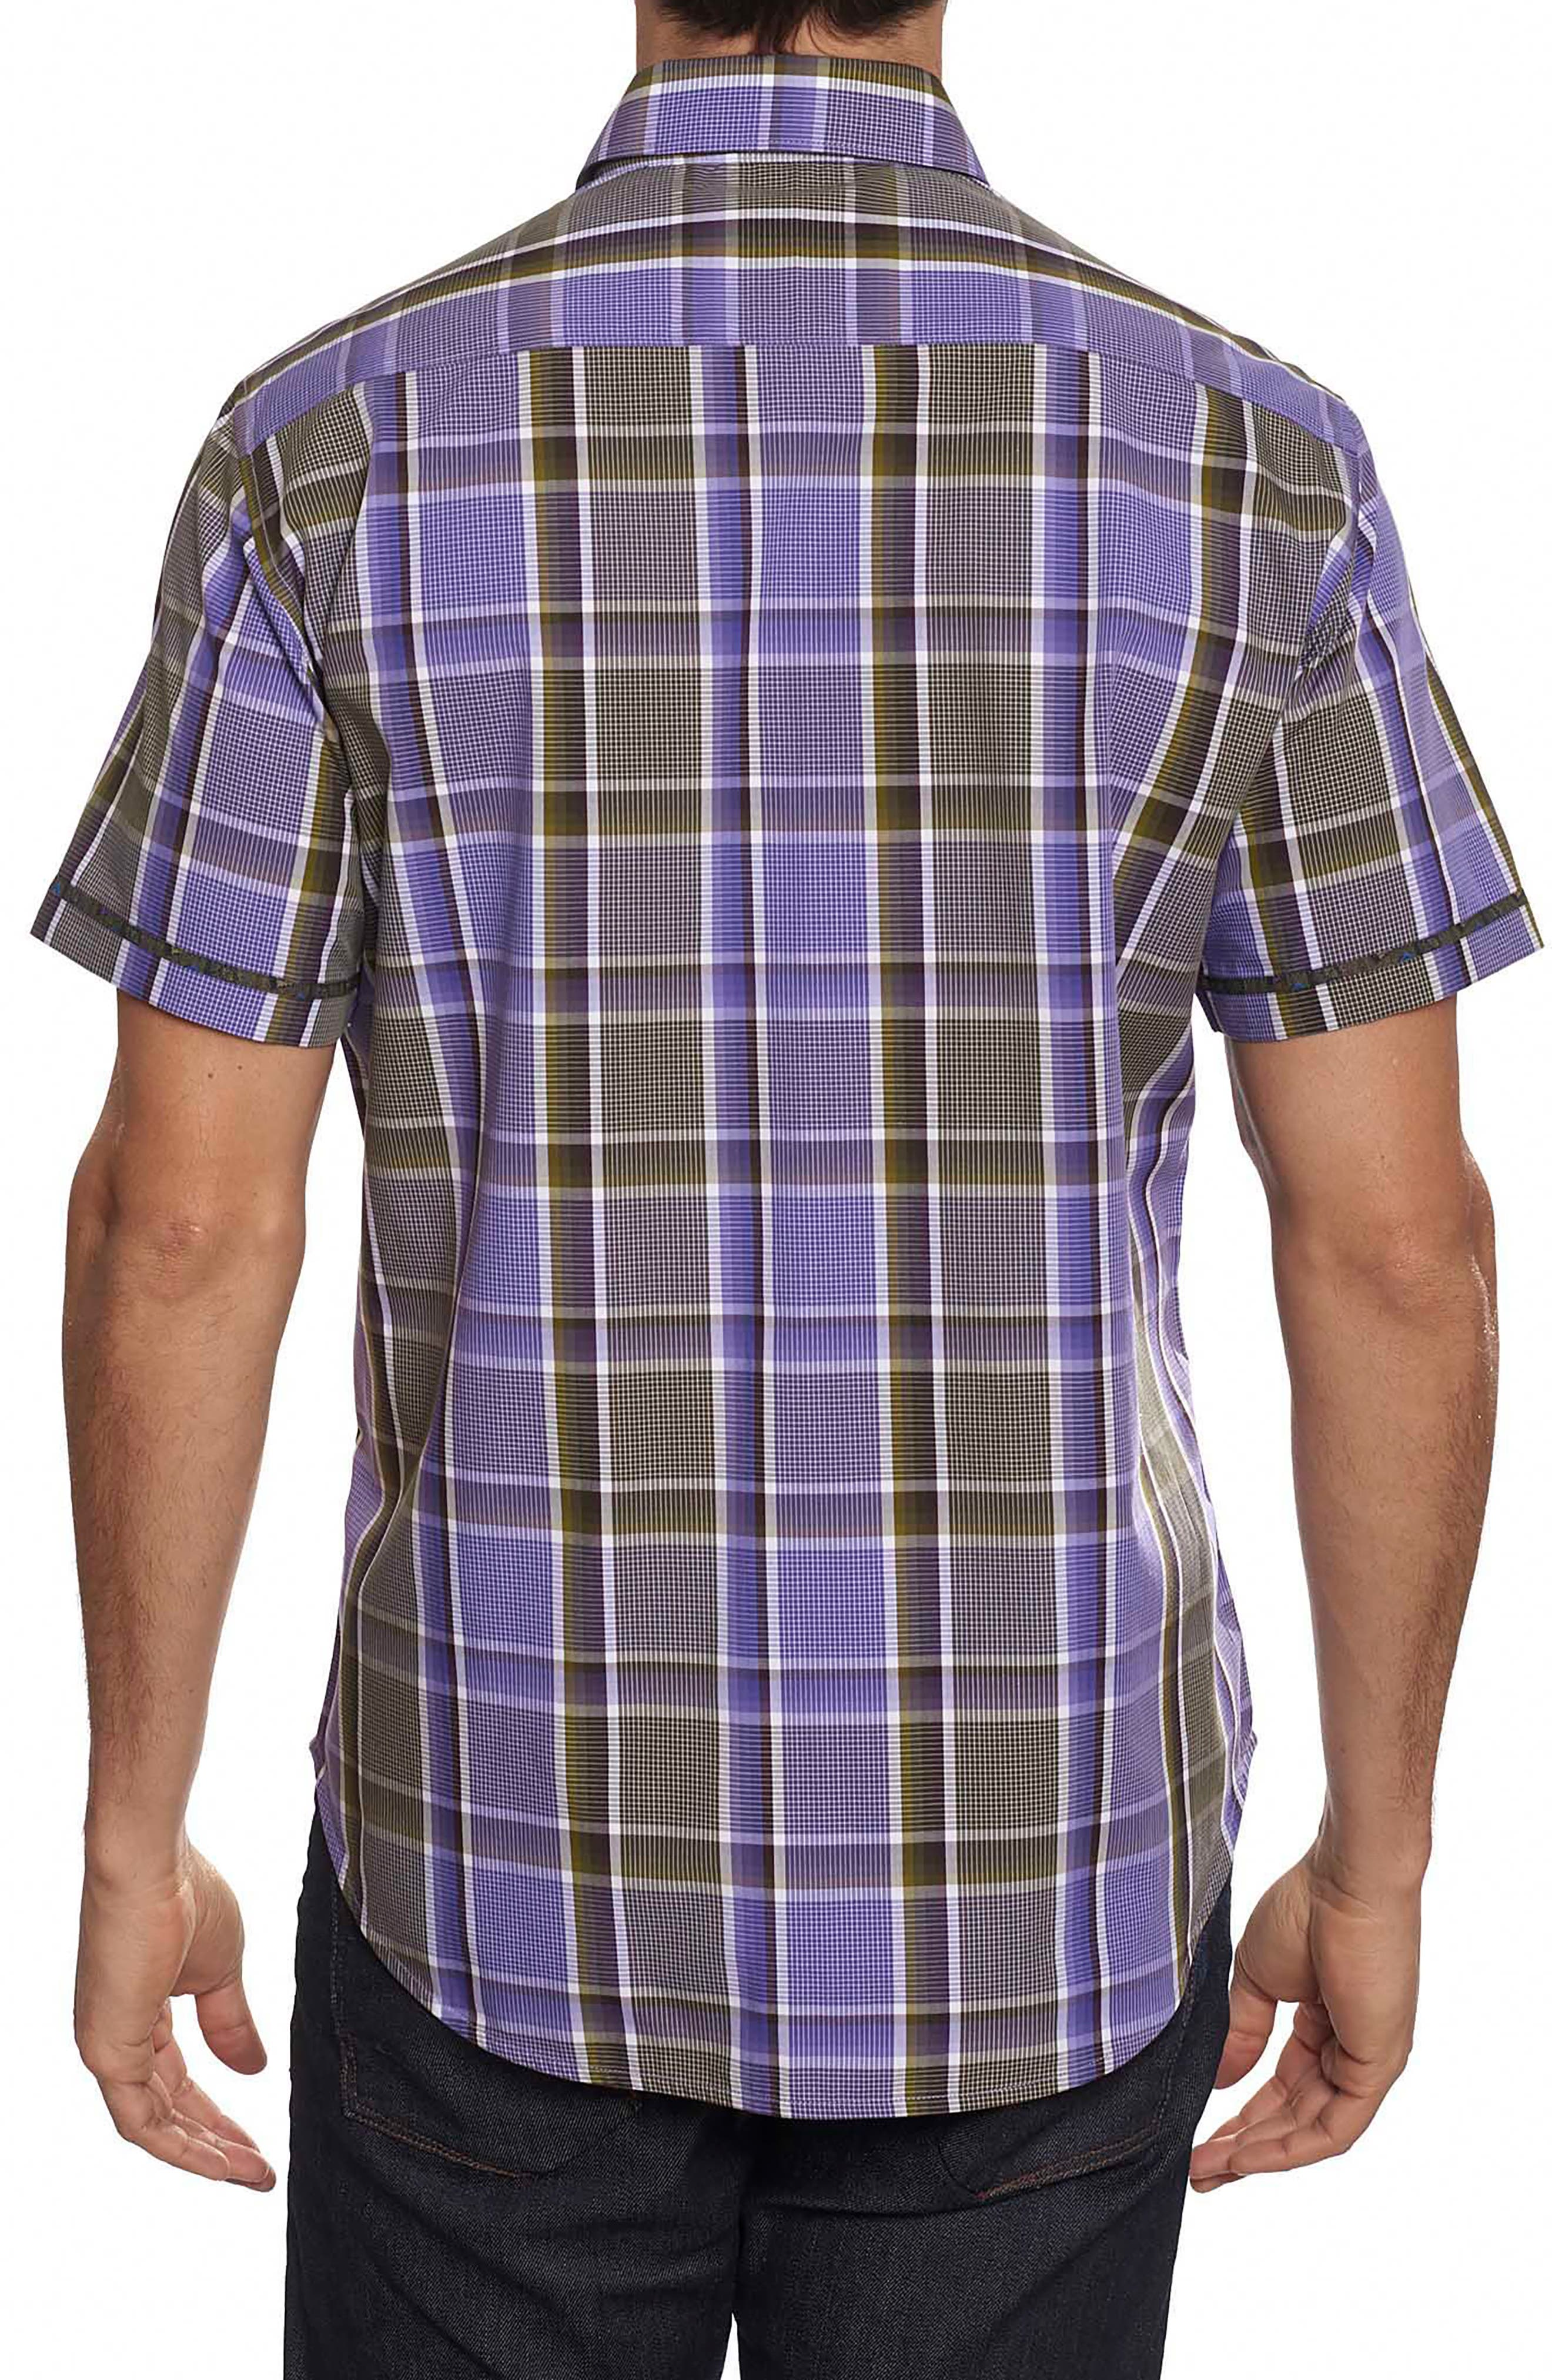 Stone Bridge Classic Fit Sport Shirt,                             Alternate thumbnail 2, color,                             Purple